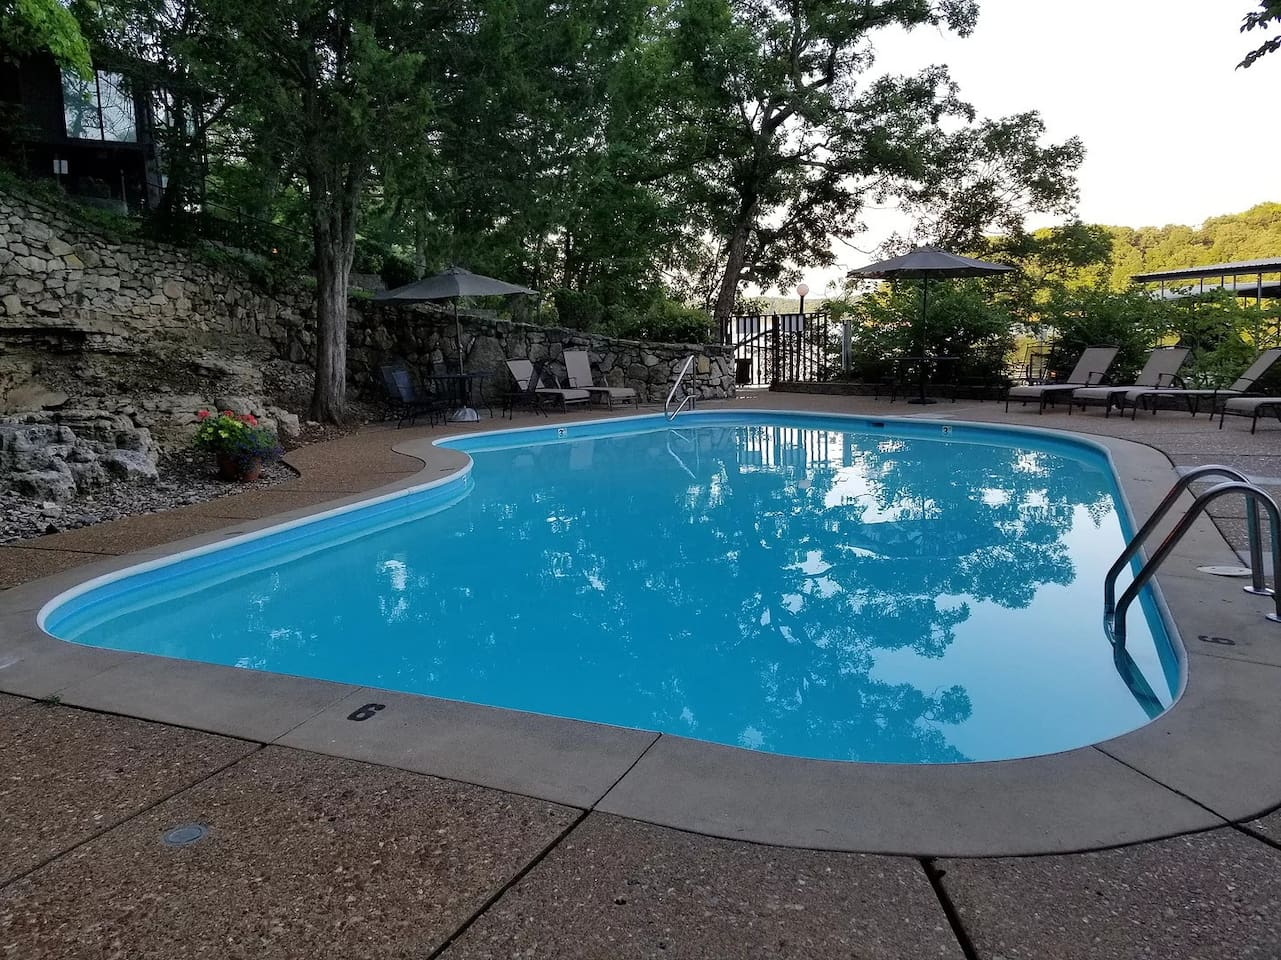 One of 3 outdoor pools in Treetop Village.  You can see this house in the background.